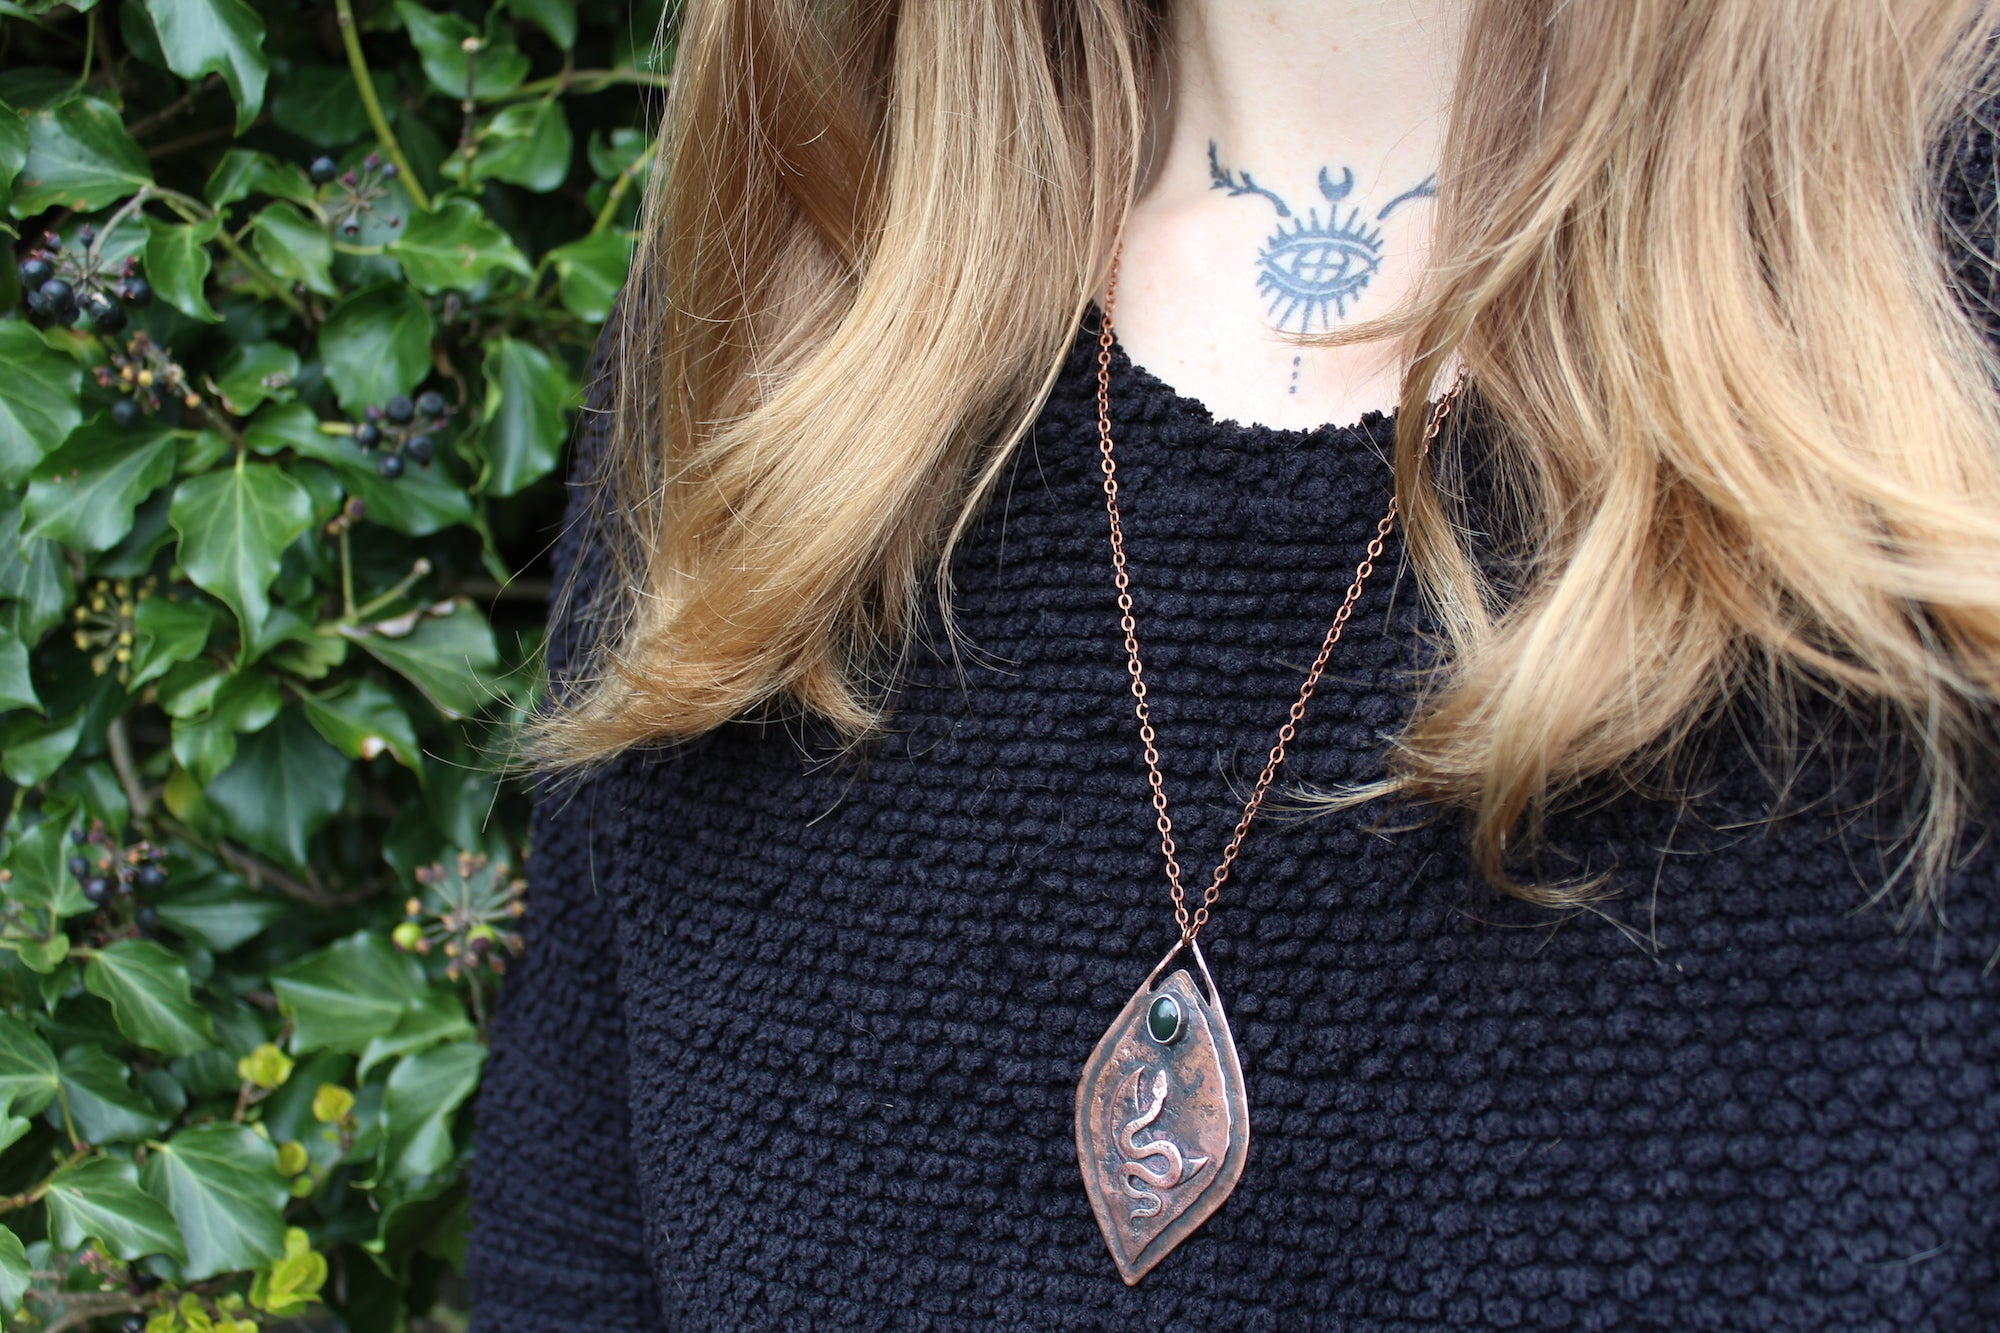 SERPENT YONI Handmade Copper Necklace with Bloodstone